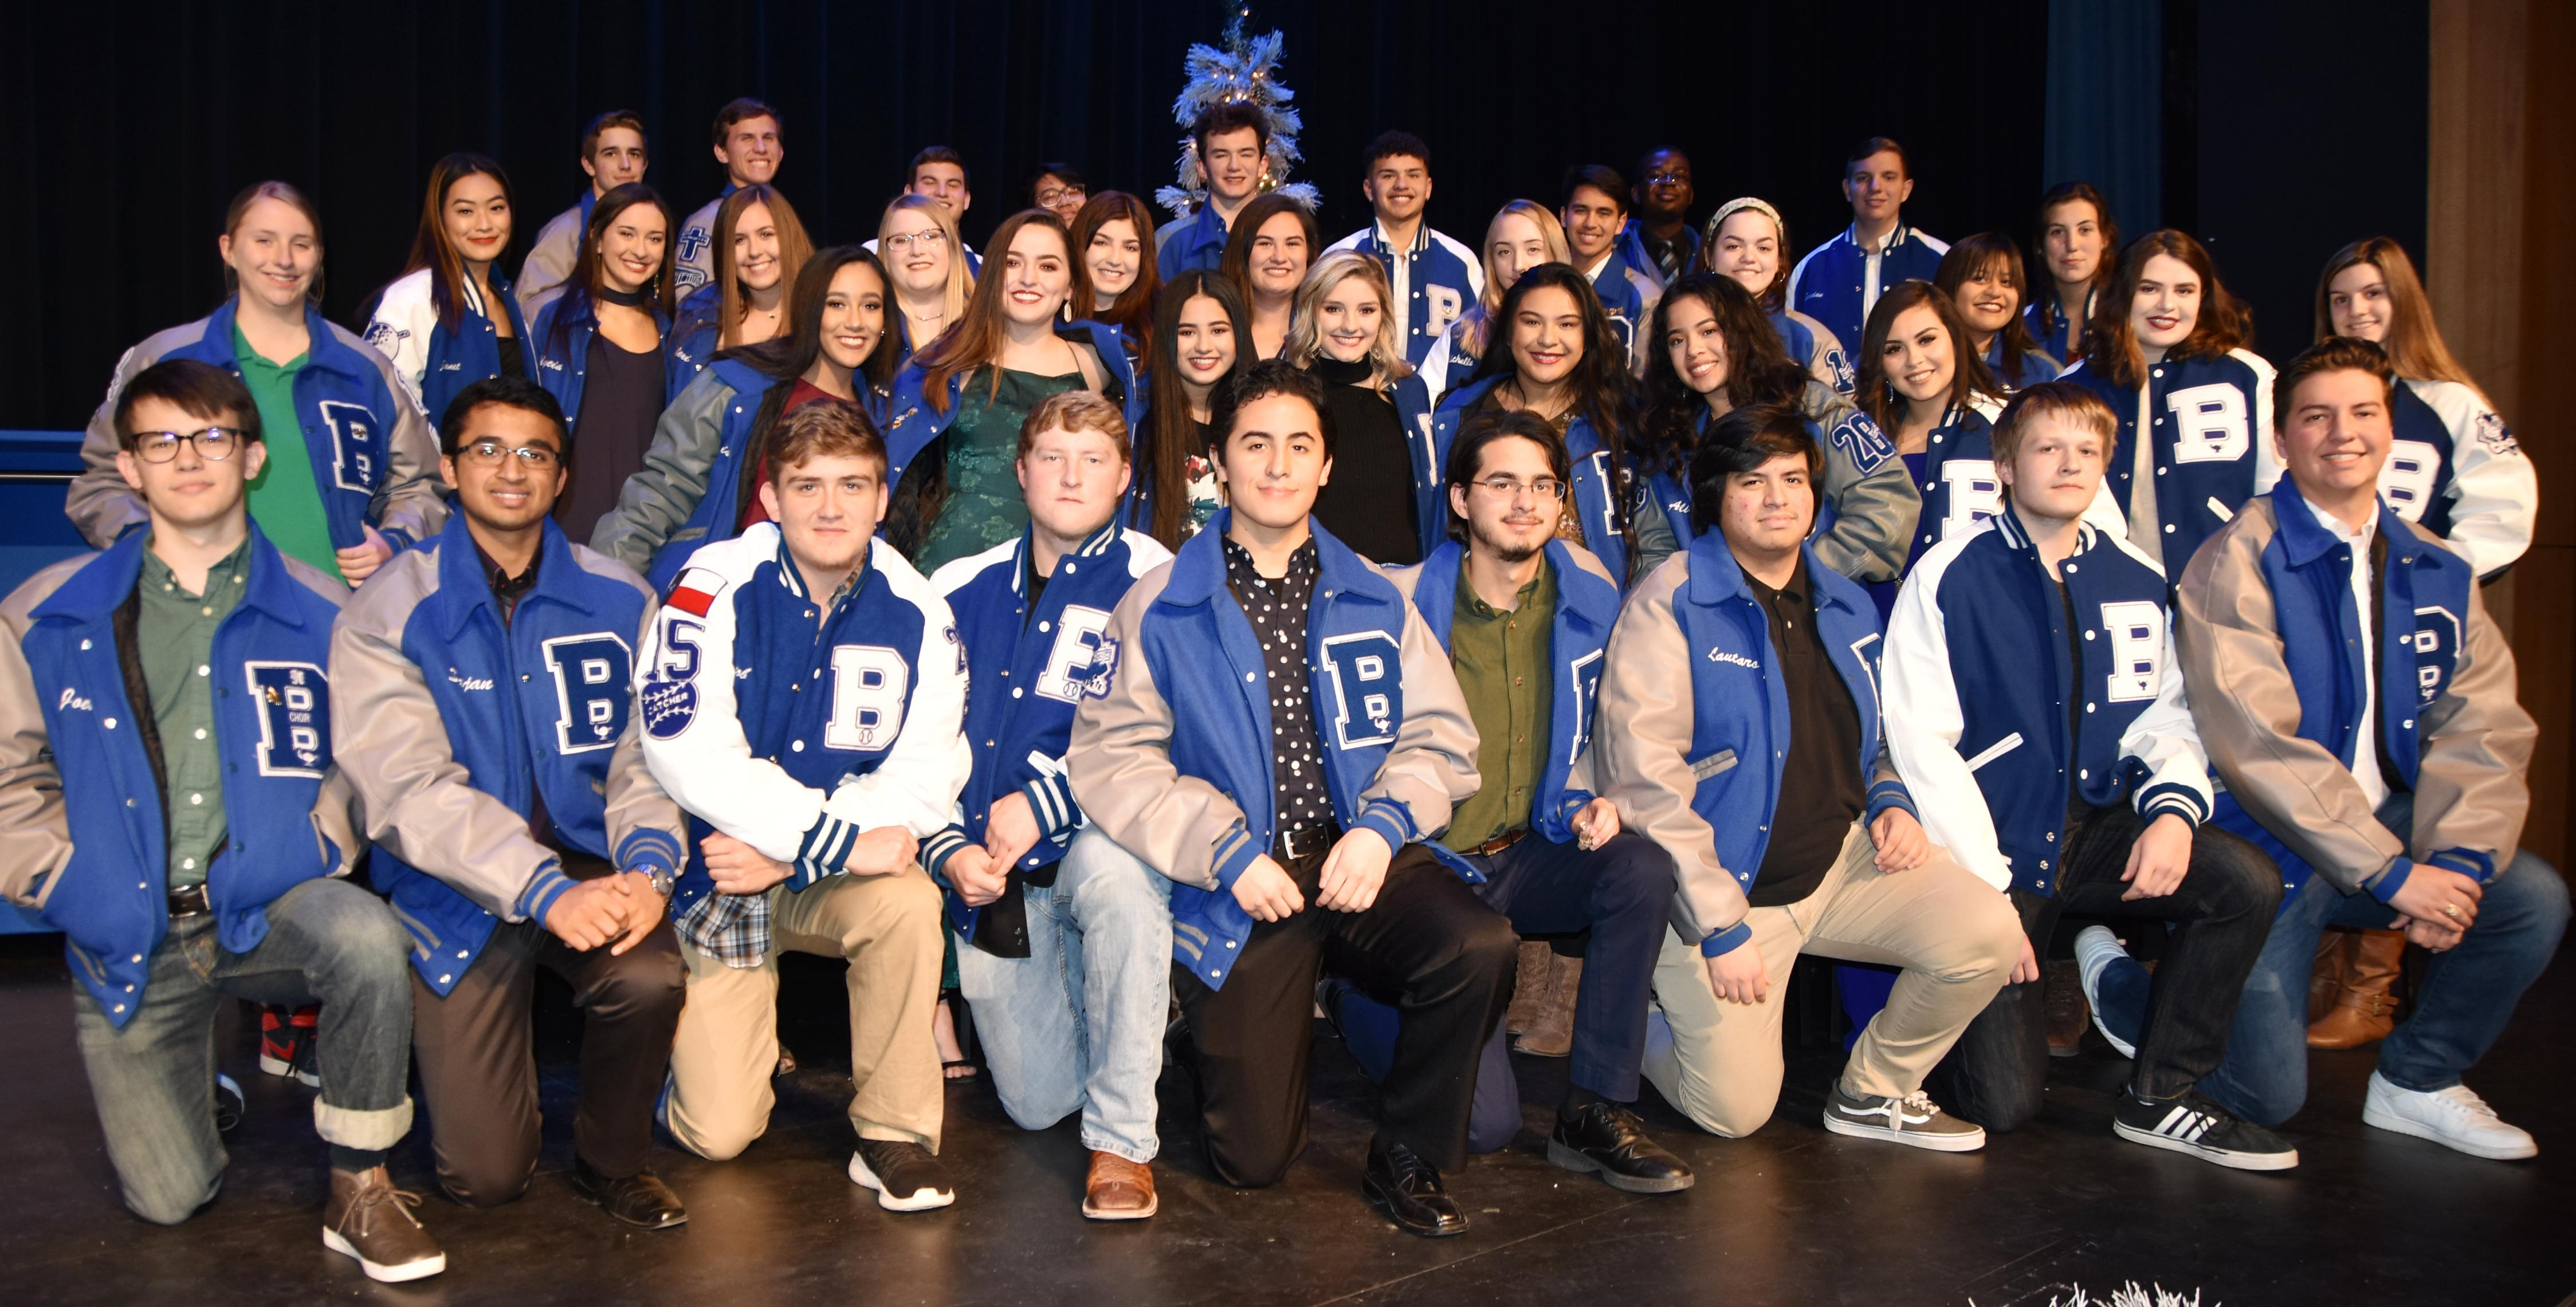 Brewer High School honored 10th through 12th graders who achieved a top 10 percent ranking for the 2017-18 school year during the Academic Letter Jacket Ceremony on Dec. 10. - Seniors